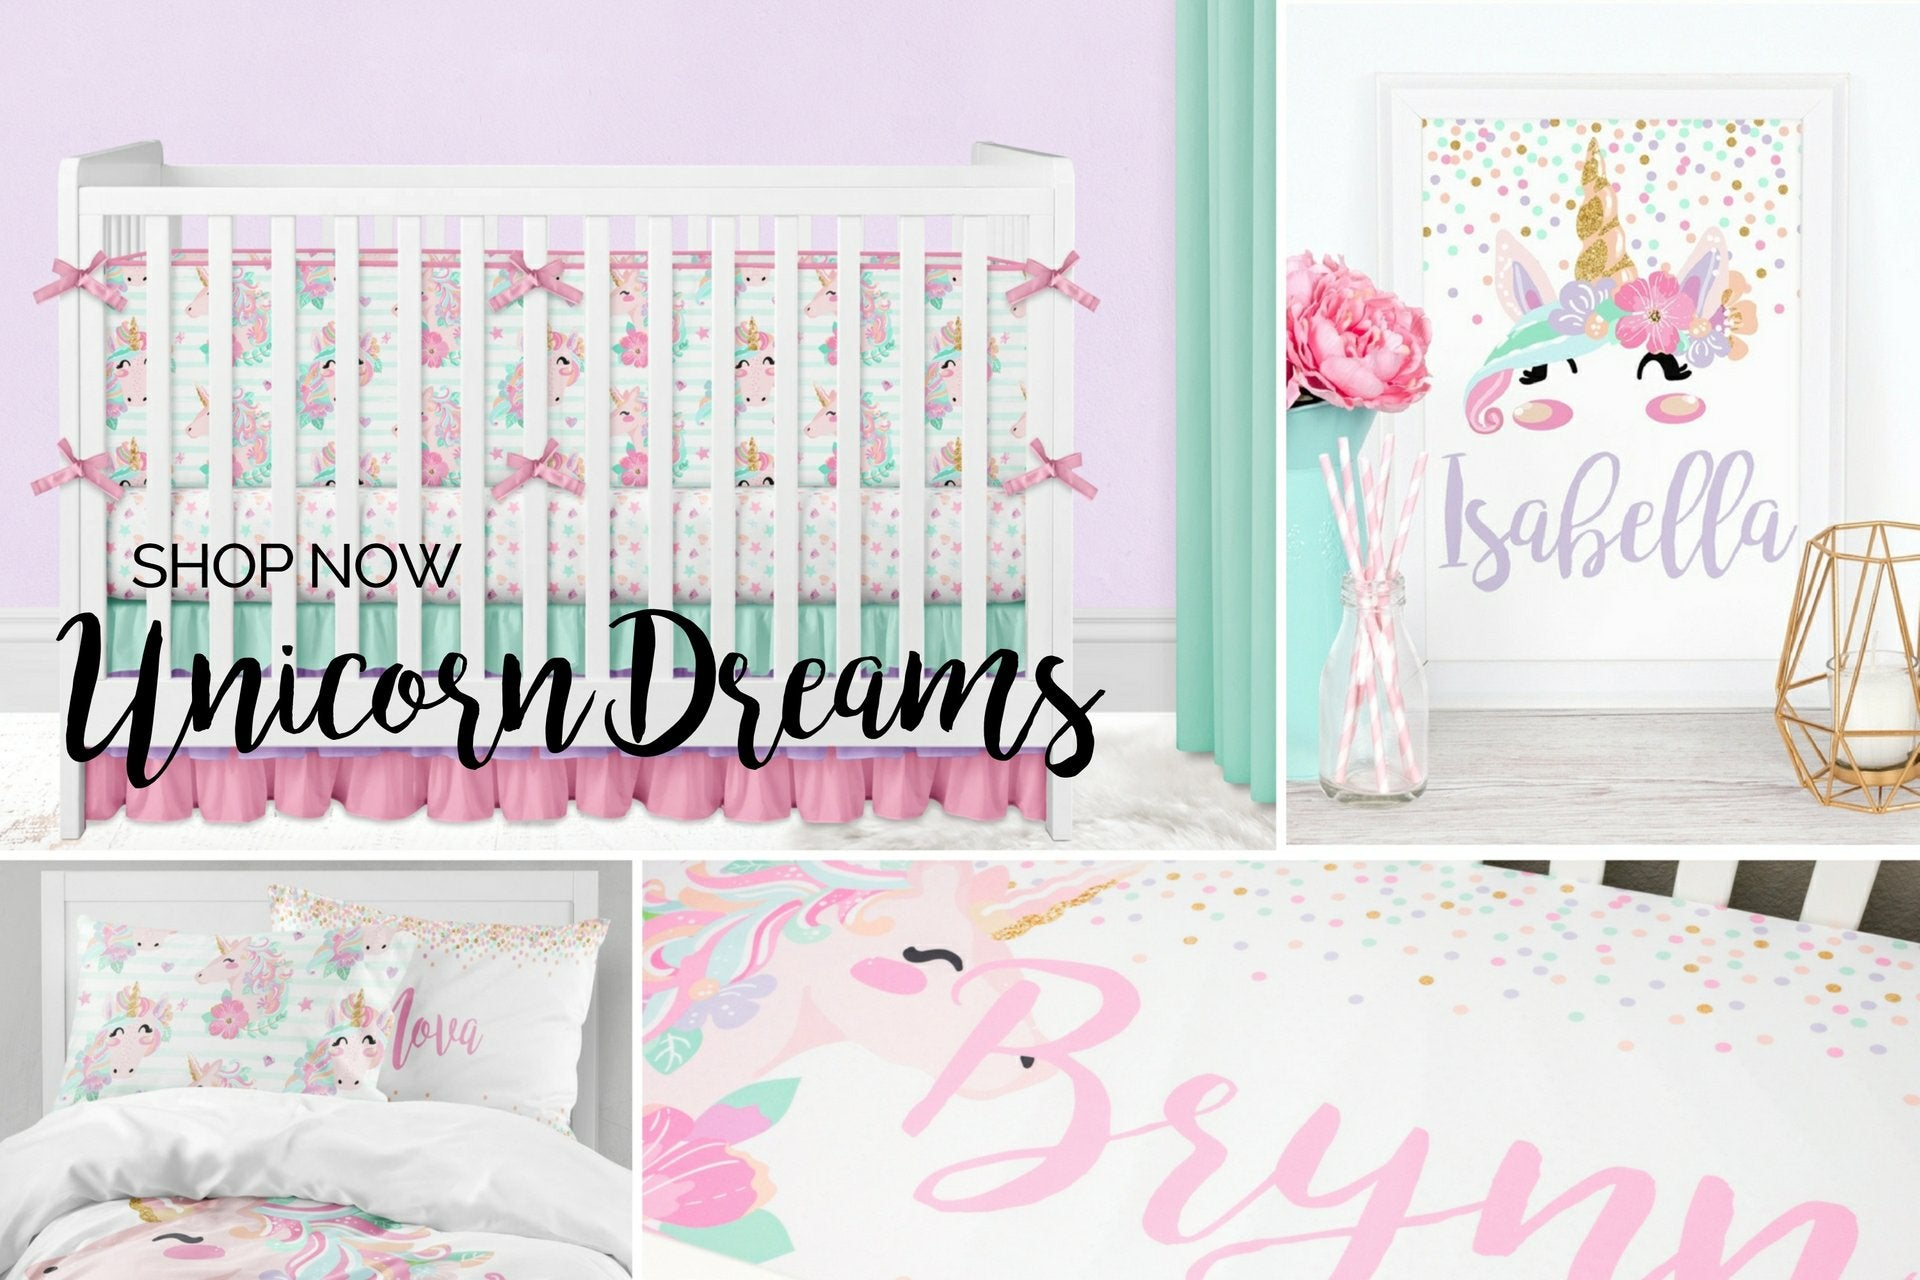 Unicorn Baby Bedding, Unicorn Bedding Set, Girls Room Decor